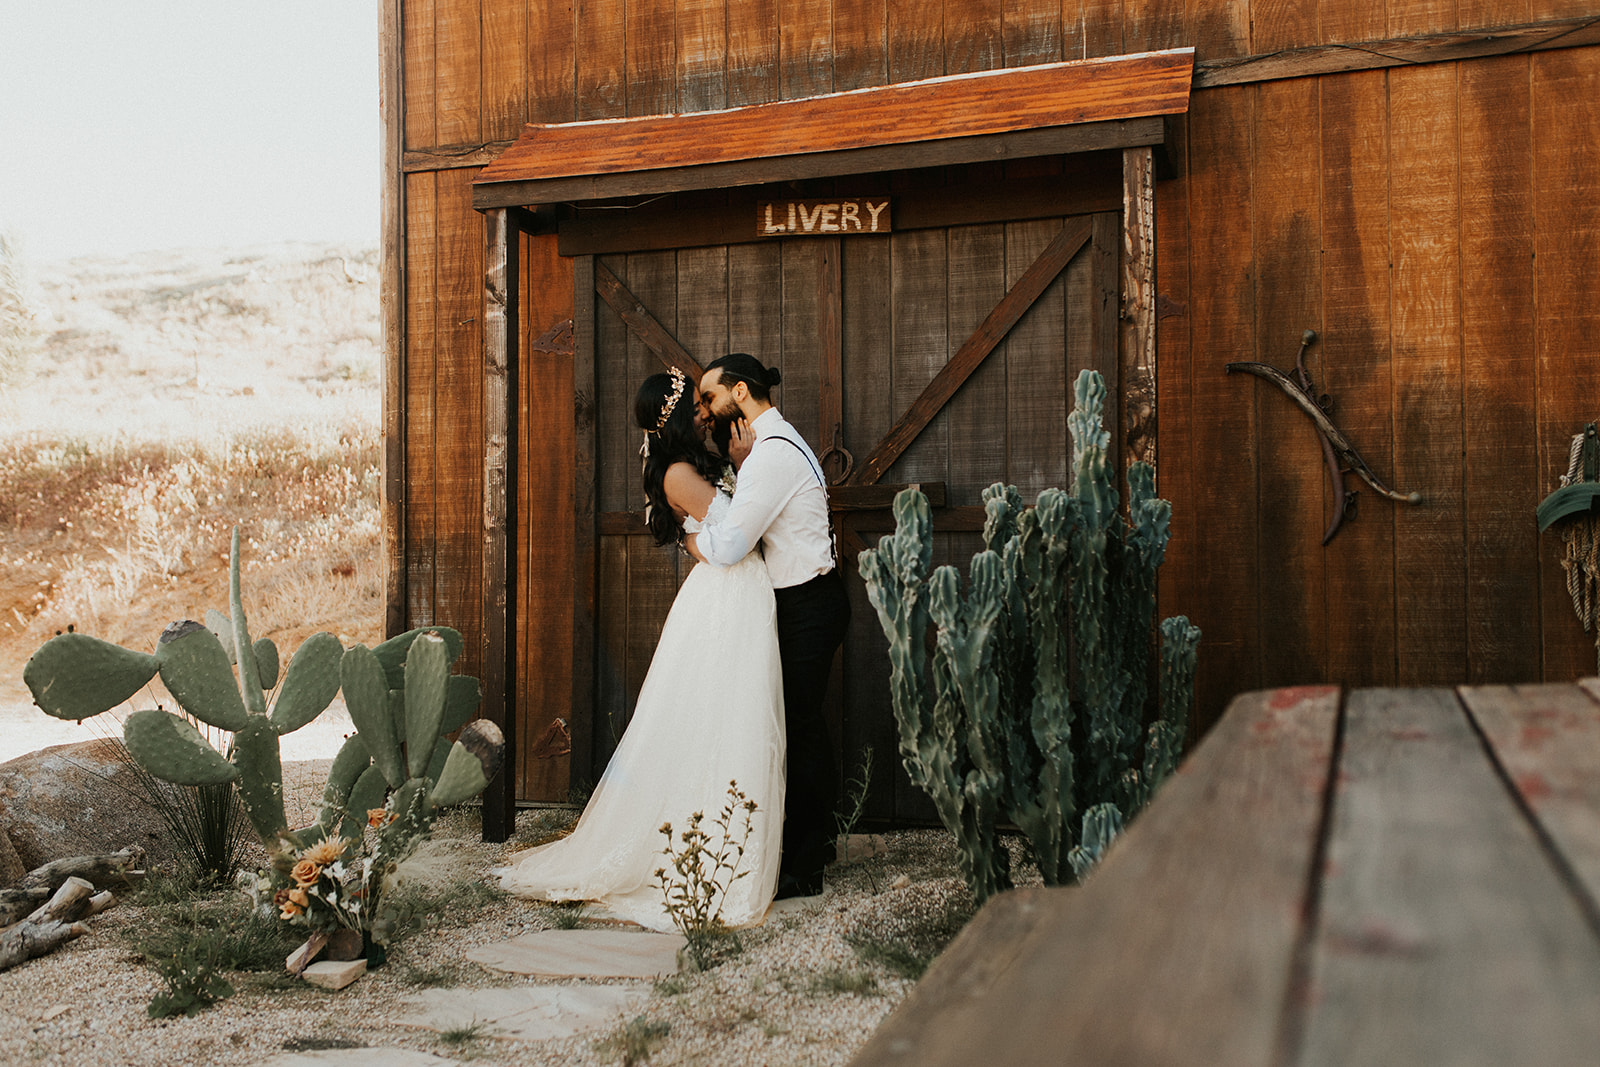 Joshua_Tree_Elopement_Hannah_Alena_Photography-97.jpg